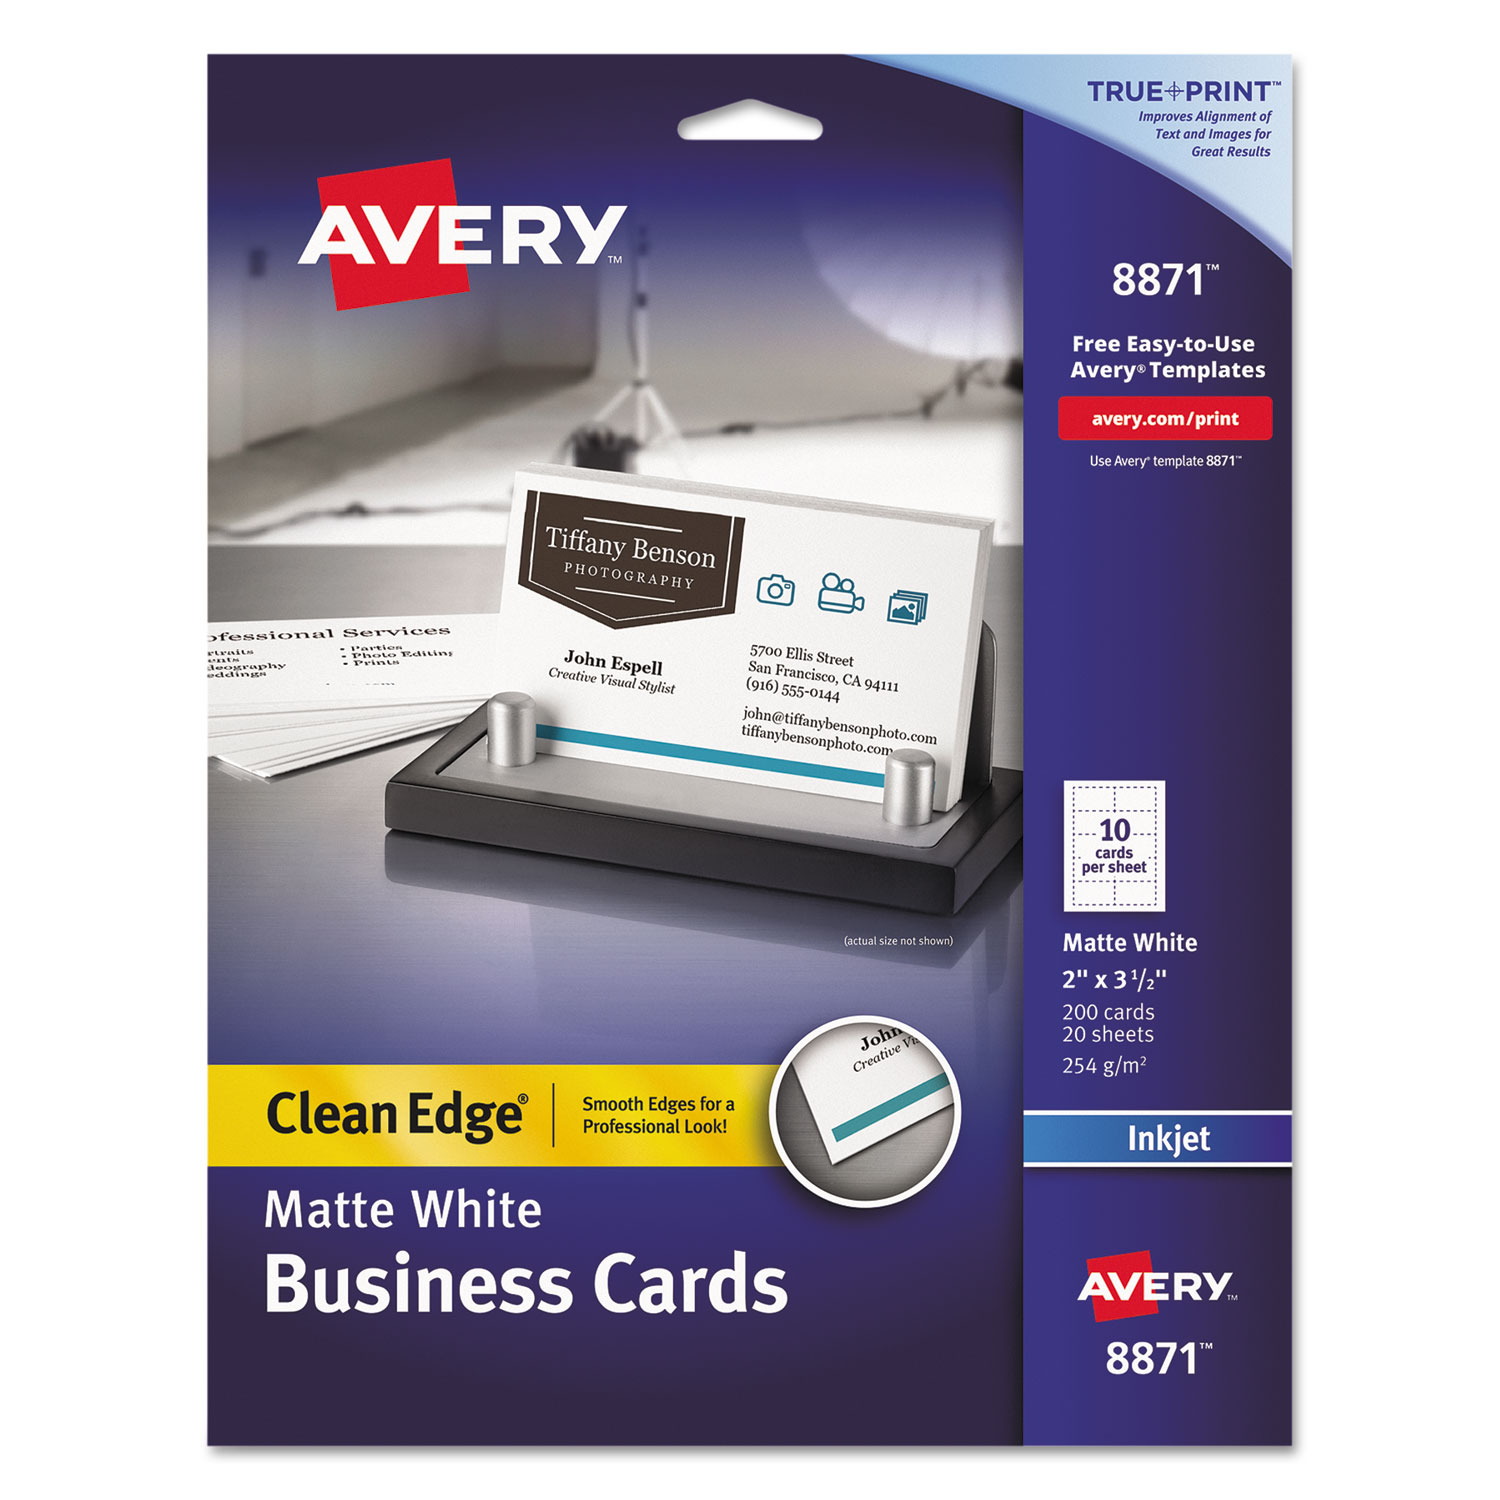 True print clean edge business cards by avery ave8871 ave8871 thumbnail 1 ave8871 thumbnail 2 ave8871 thumbnail 3 ave8871 thumbnail 4 ave8871 wajeb Gallery